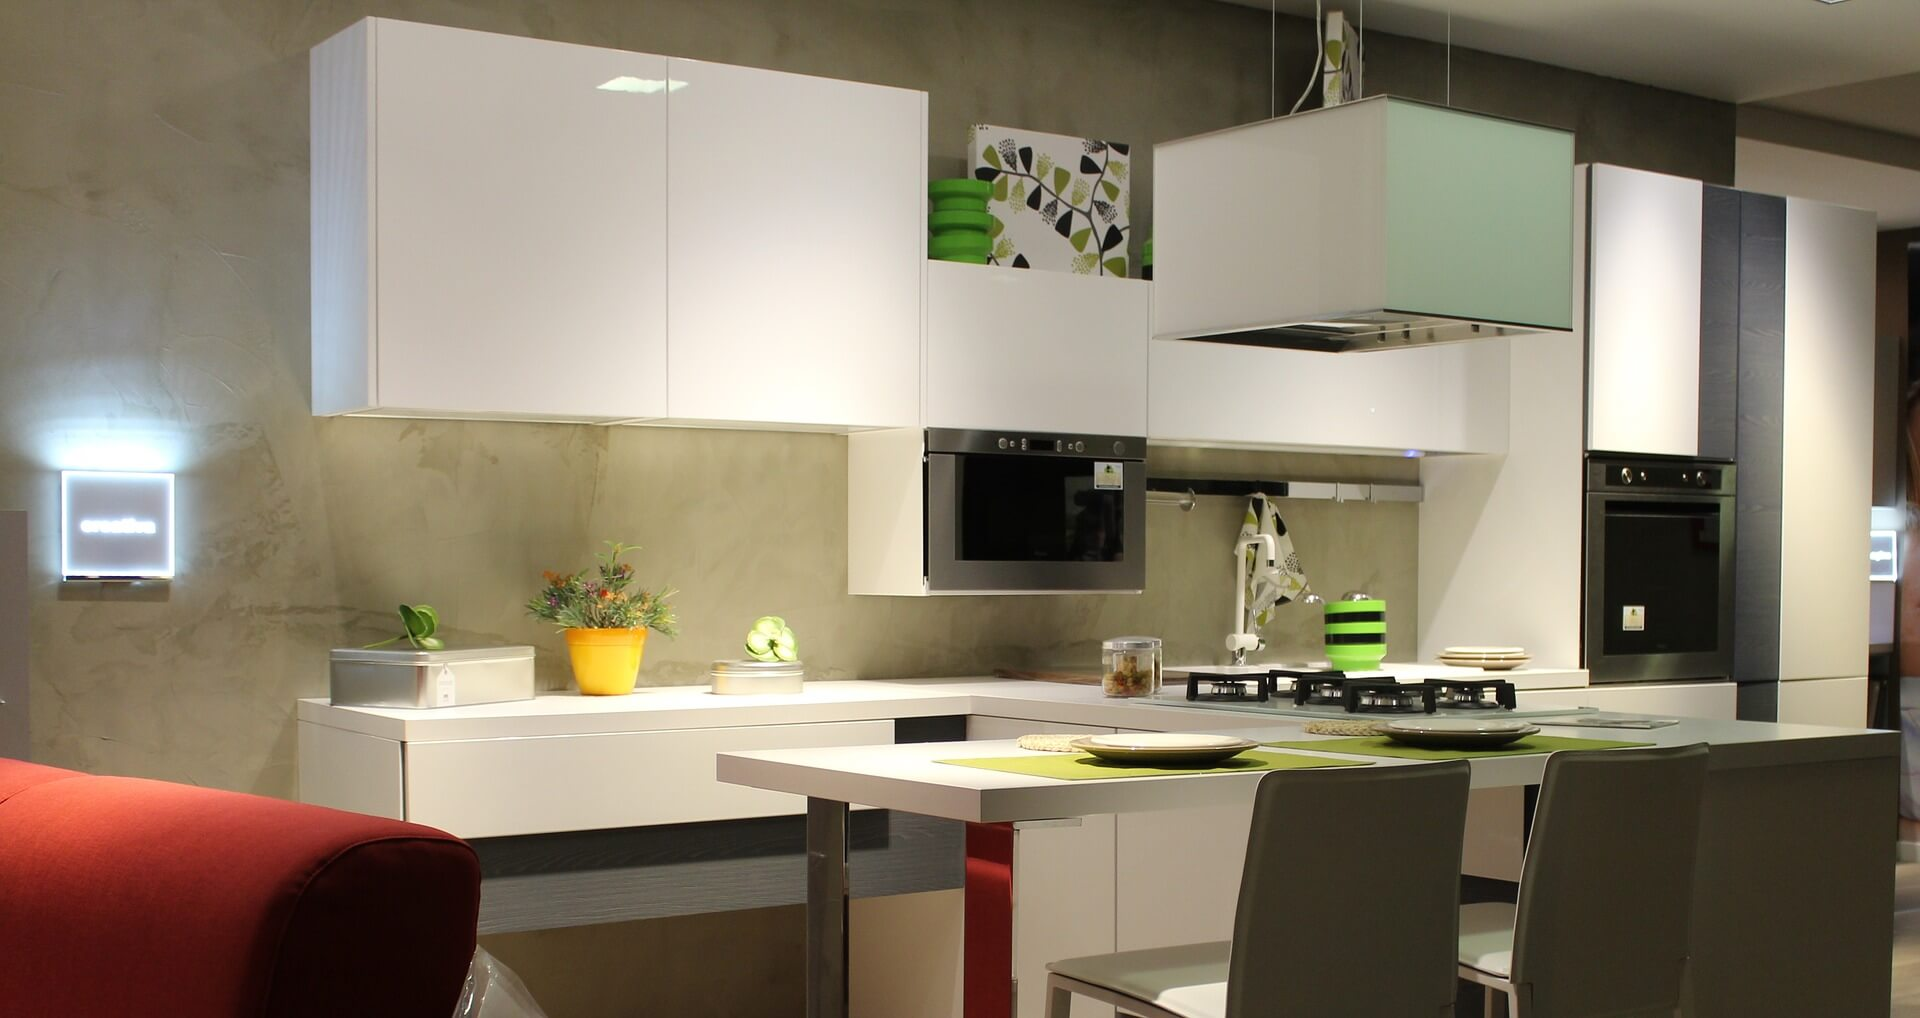 Kitchen Design Trends In 2018 5 Kitchen Cabinet Color Trends Of 2018 Interior Design Design